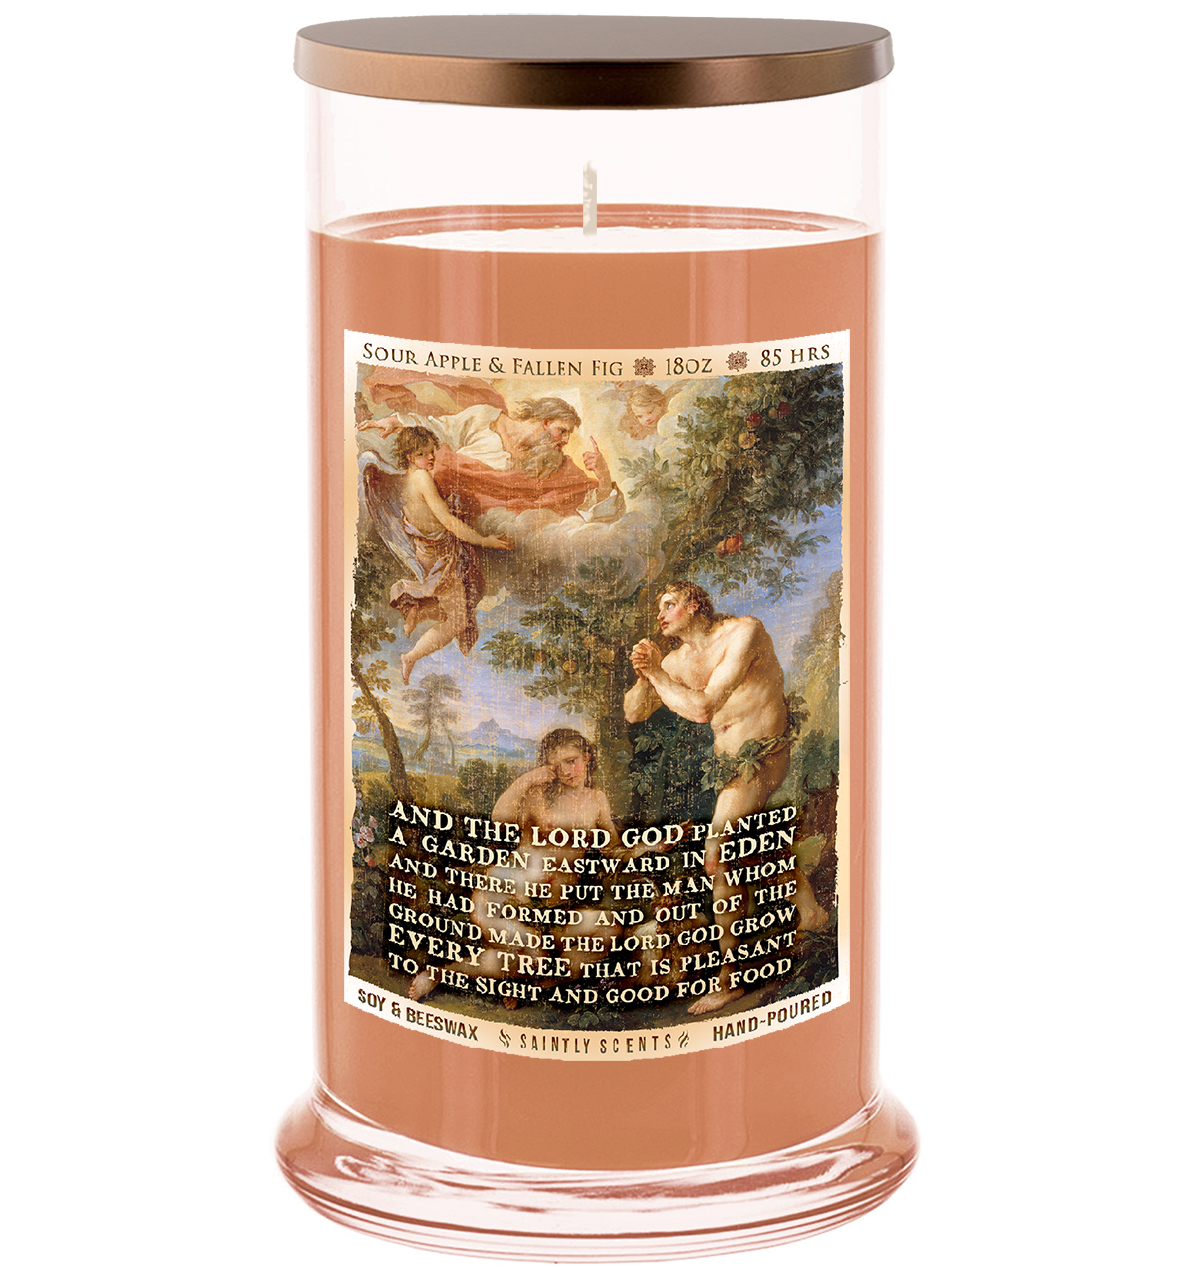 Garden of Eden Scented Prayer Candle - Sour Apples and Fallen Figs